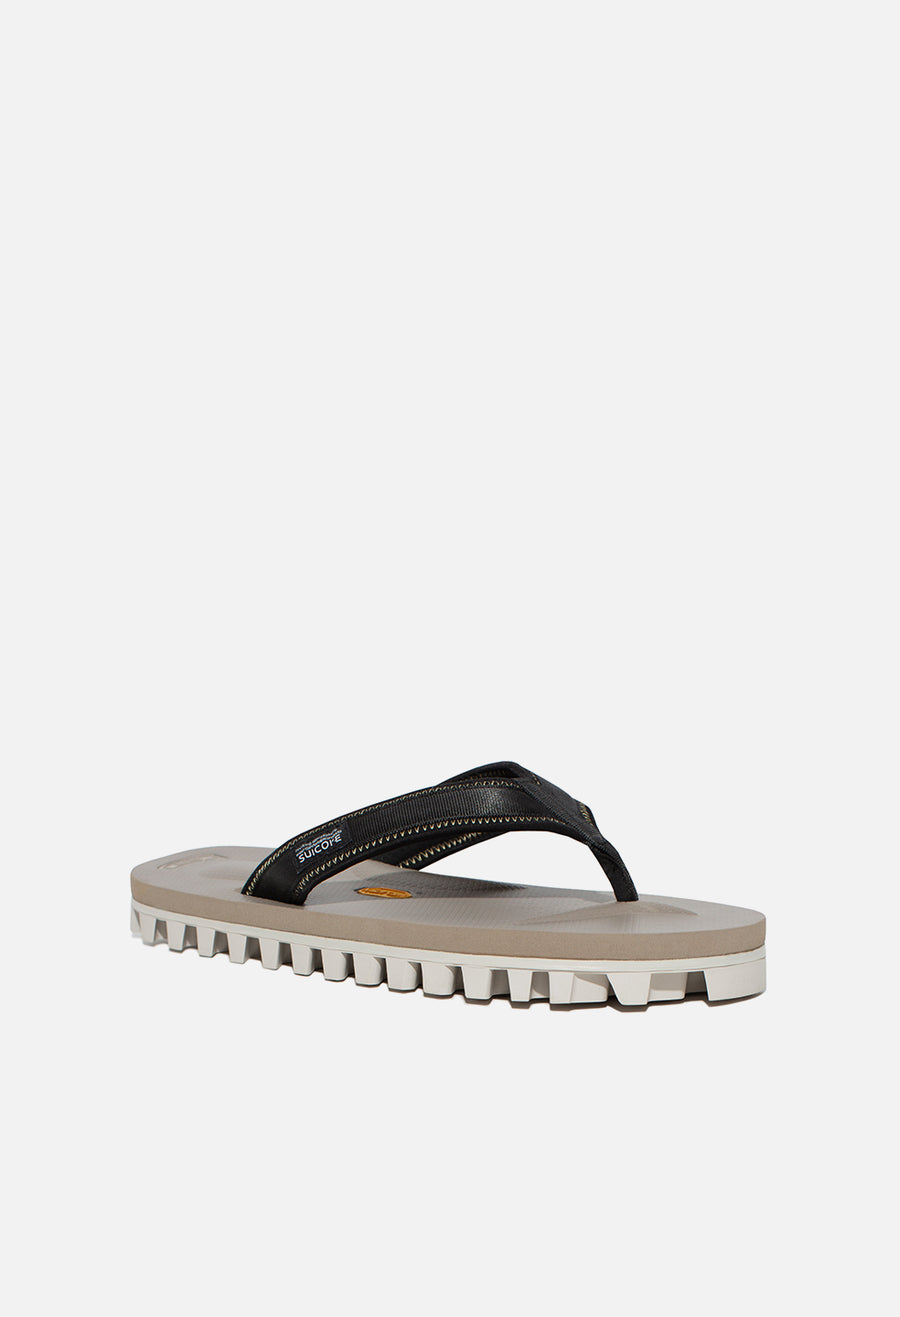 suicoke john elliott jono sandals in beige